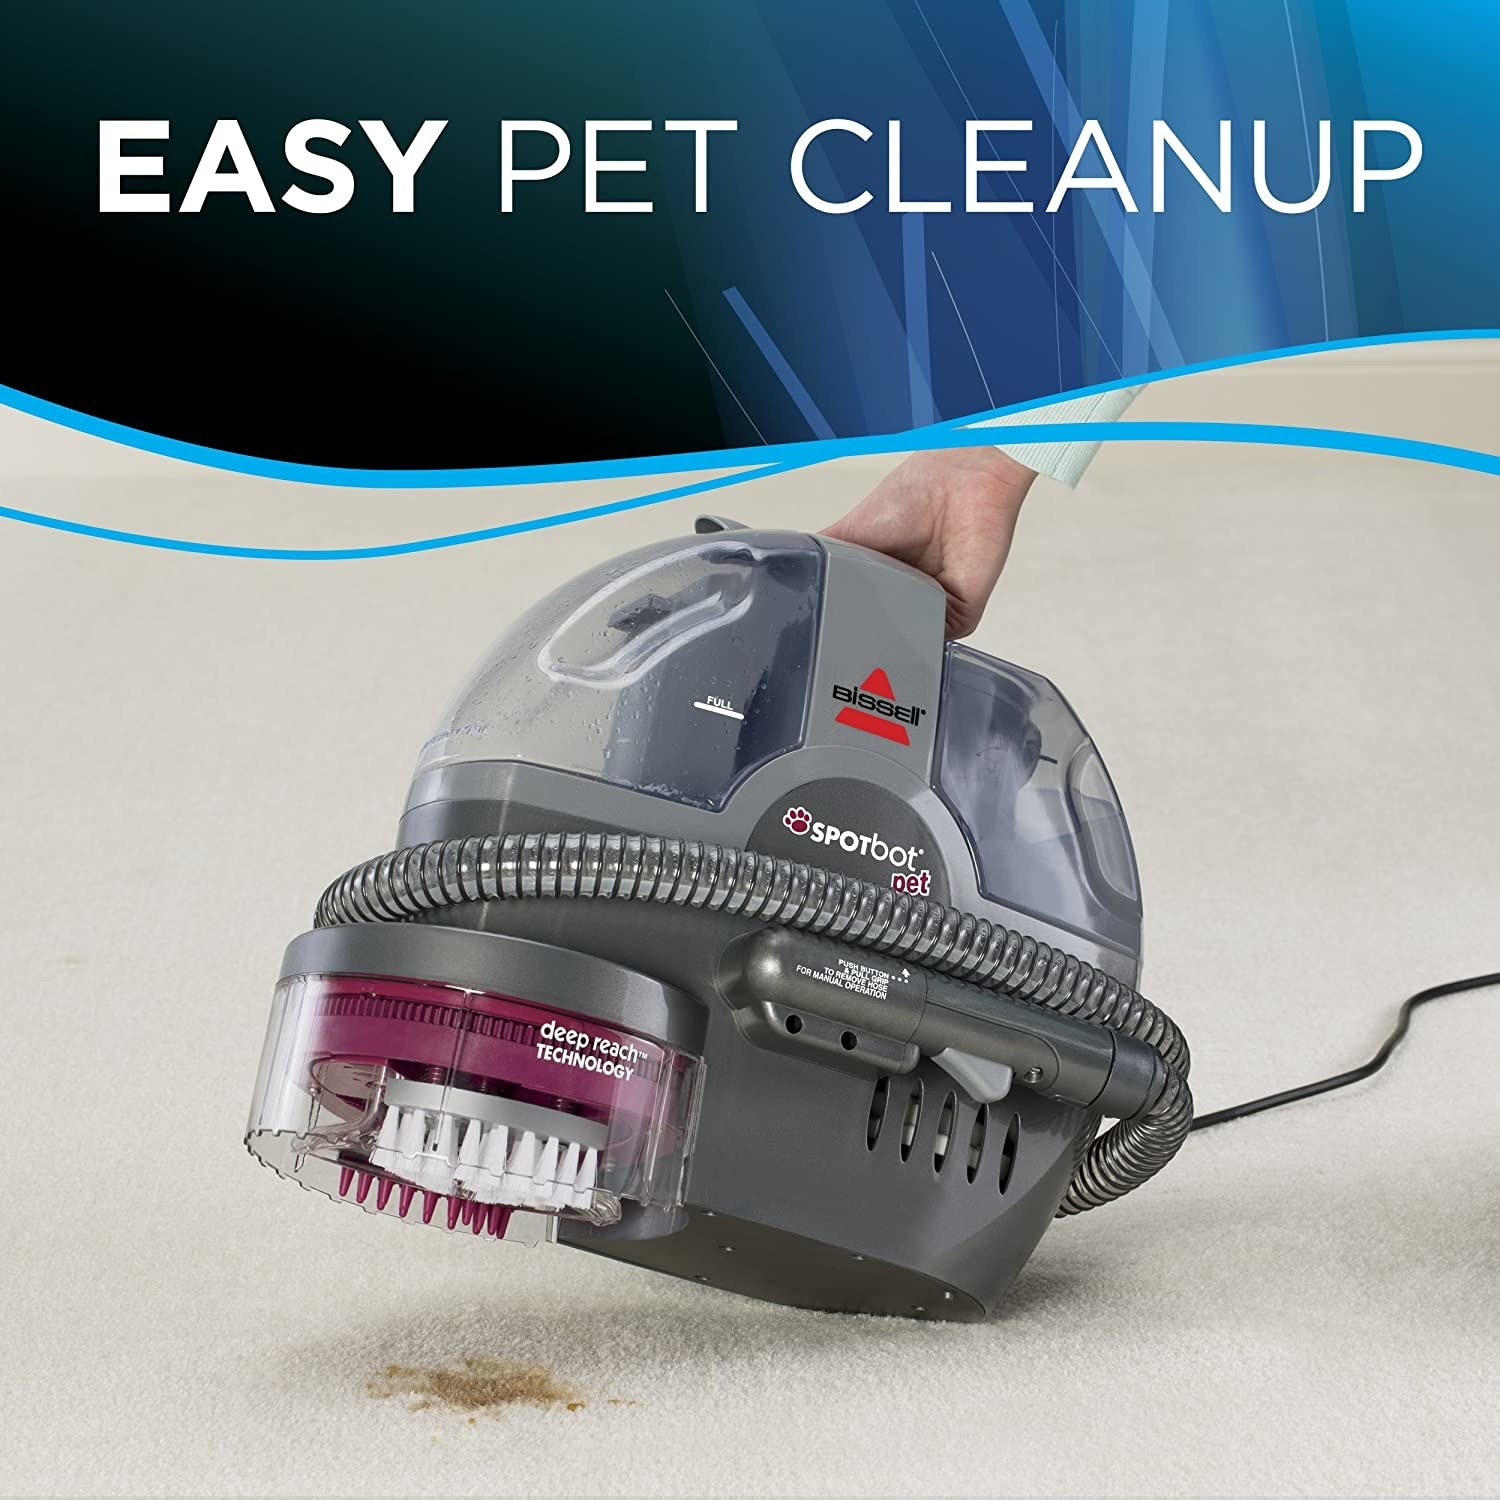 The Bissell Spot Bot Pet Cleaner